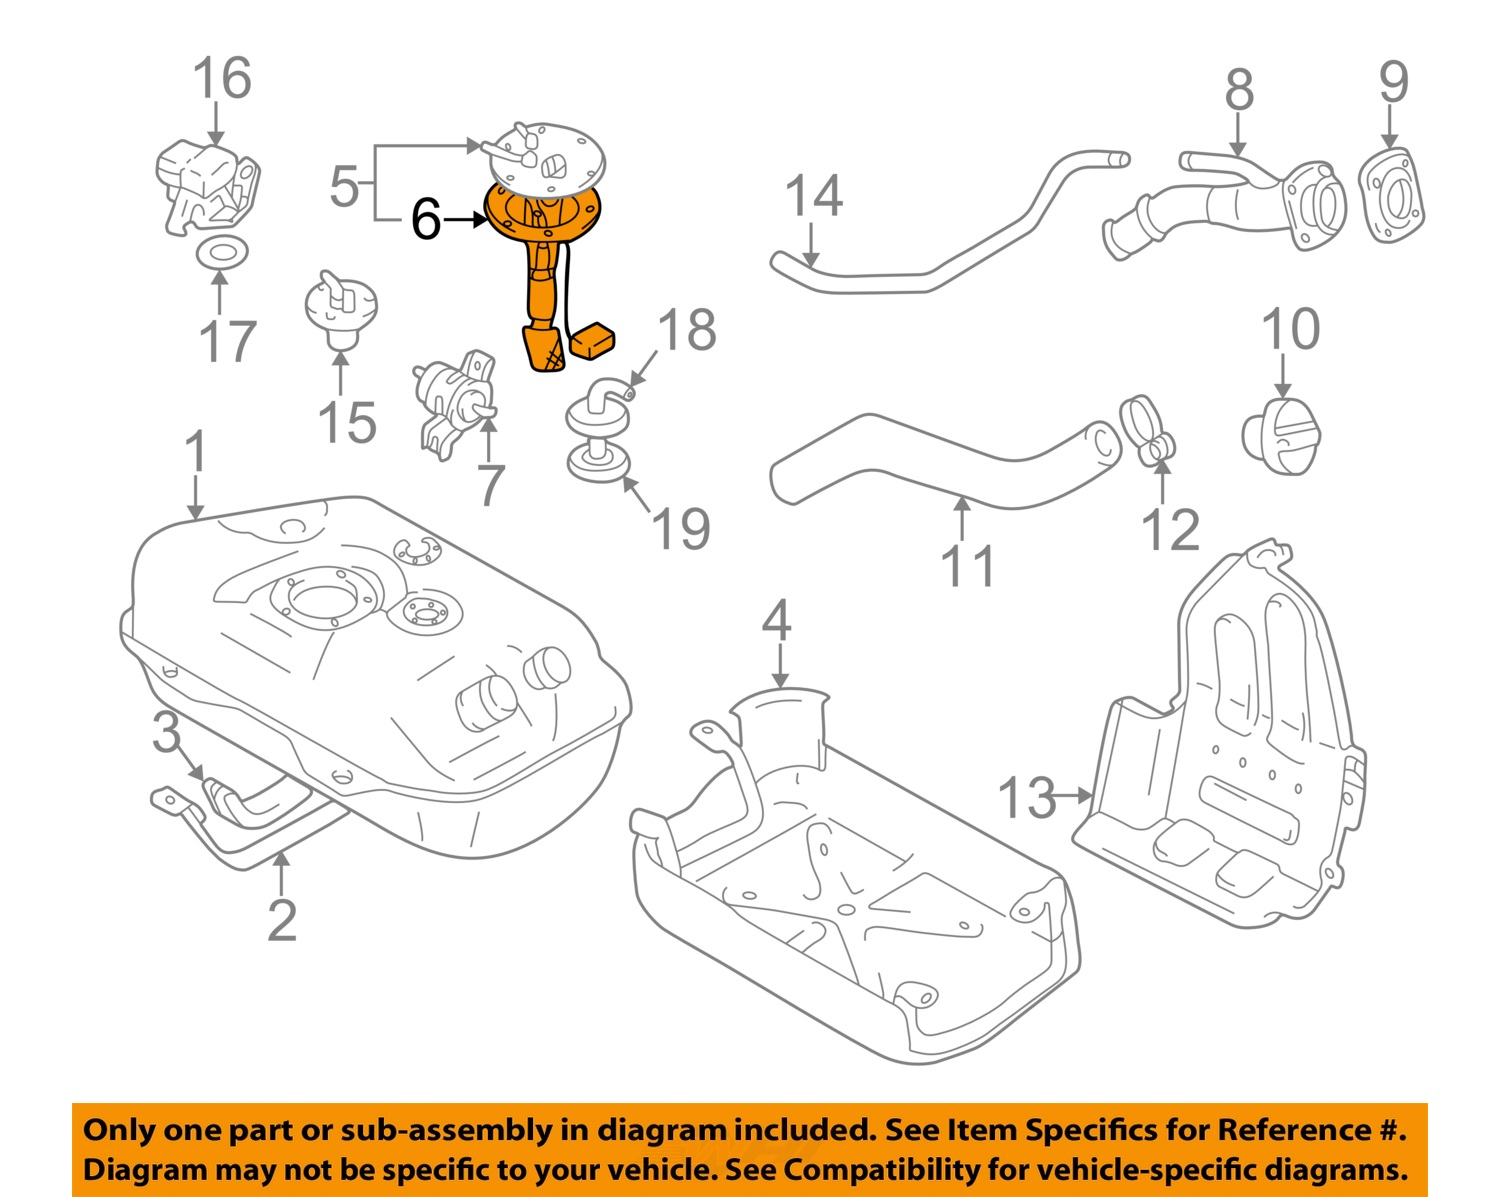 wiring diagram for pioneer car stereo deh 425 pioneer tuner deh p3000 wiring diagram